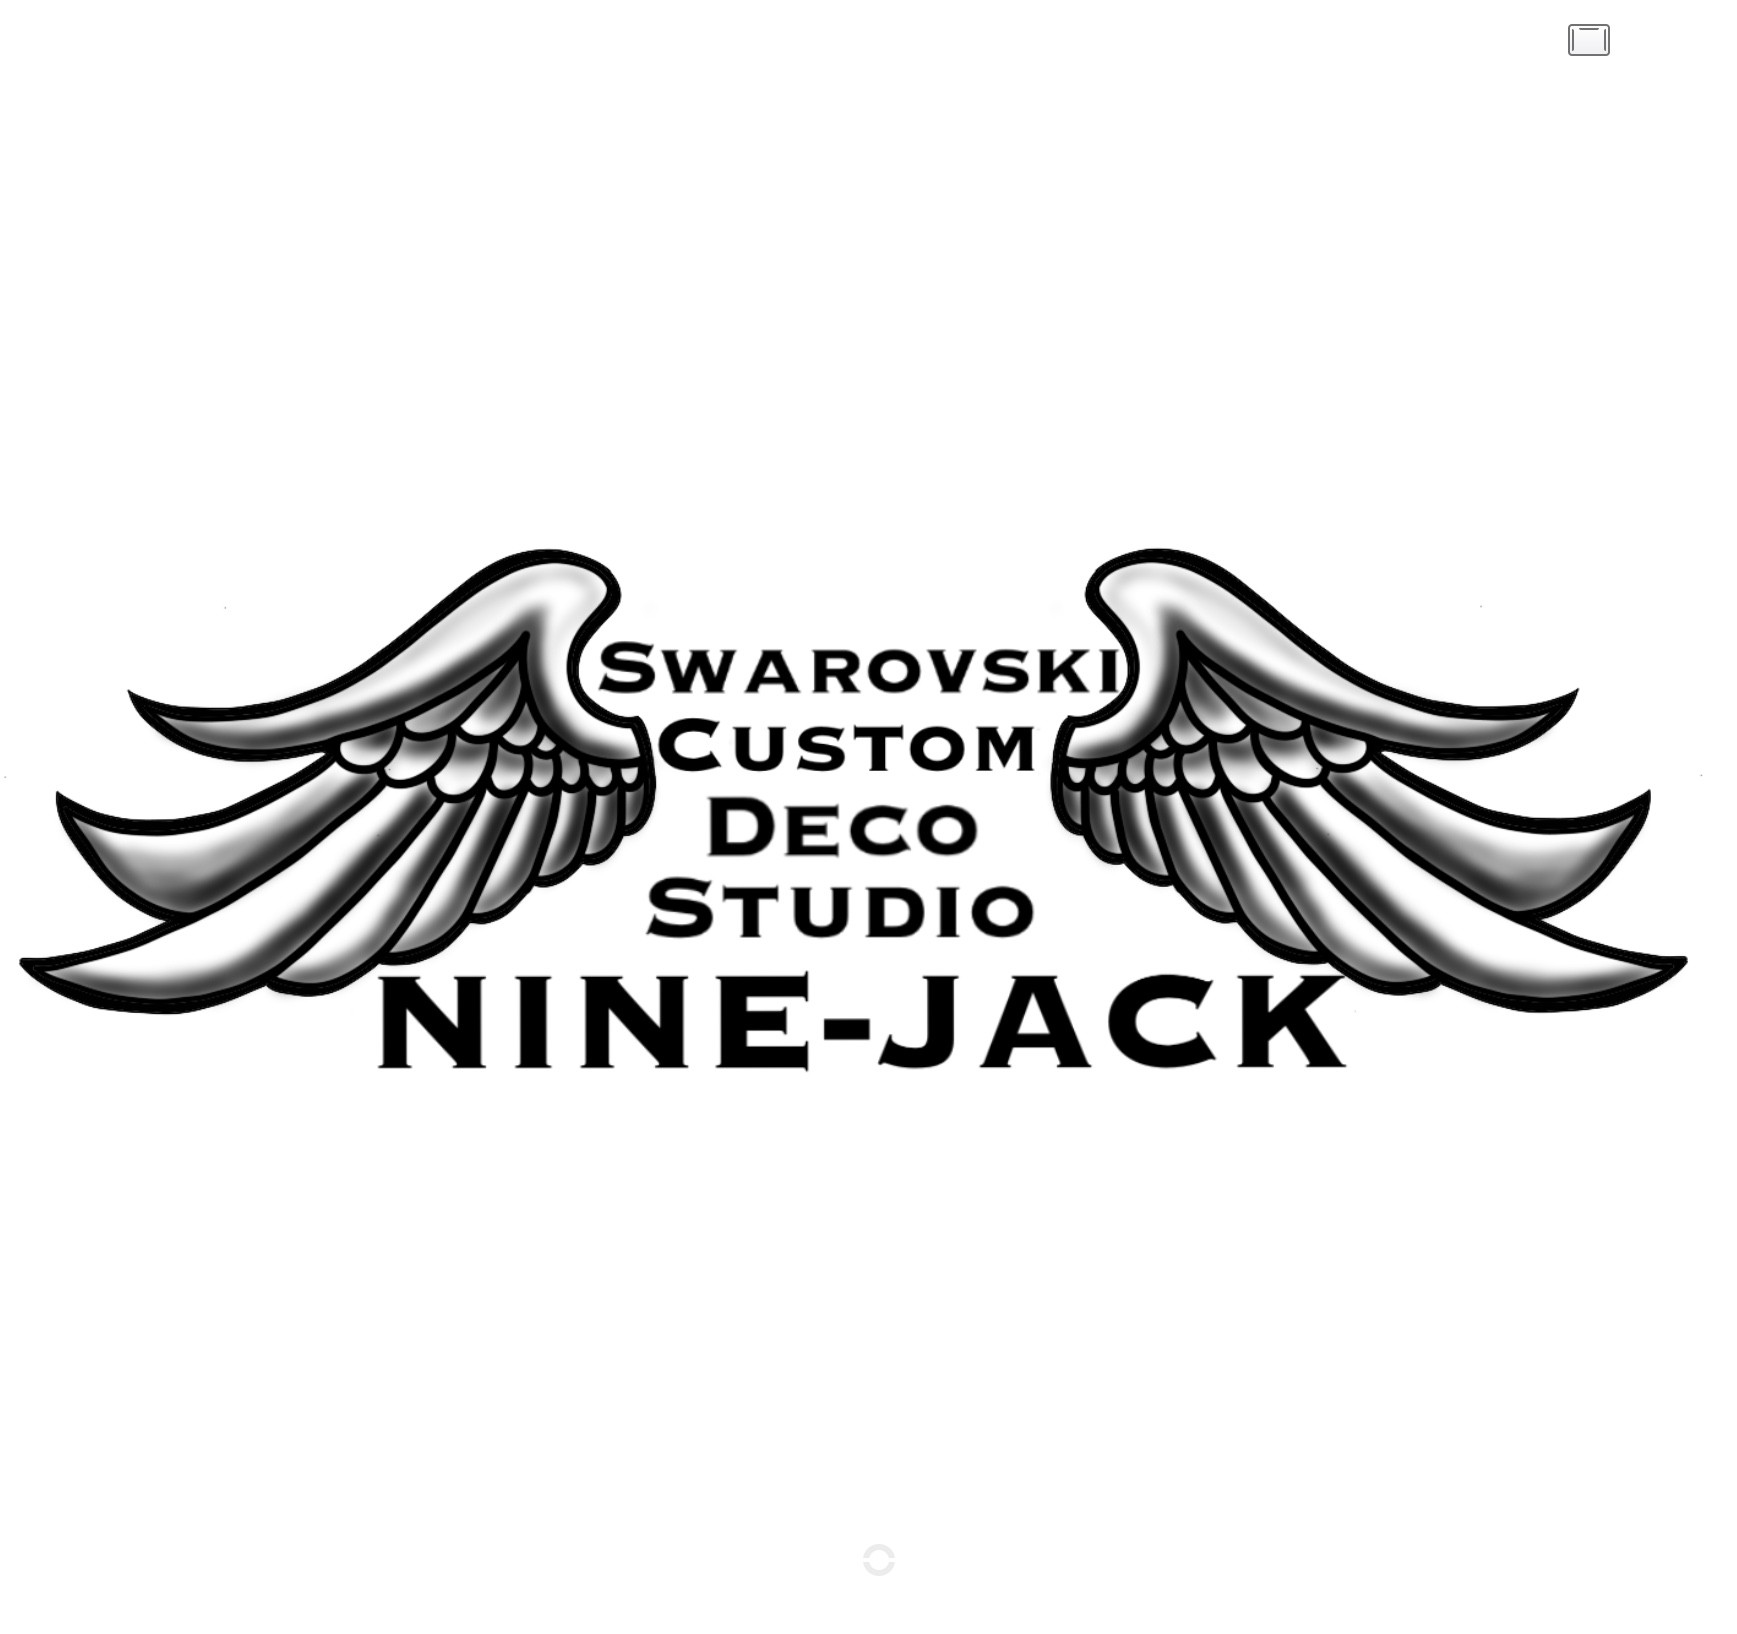 swarovski custom deco studio NINE-JACK